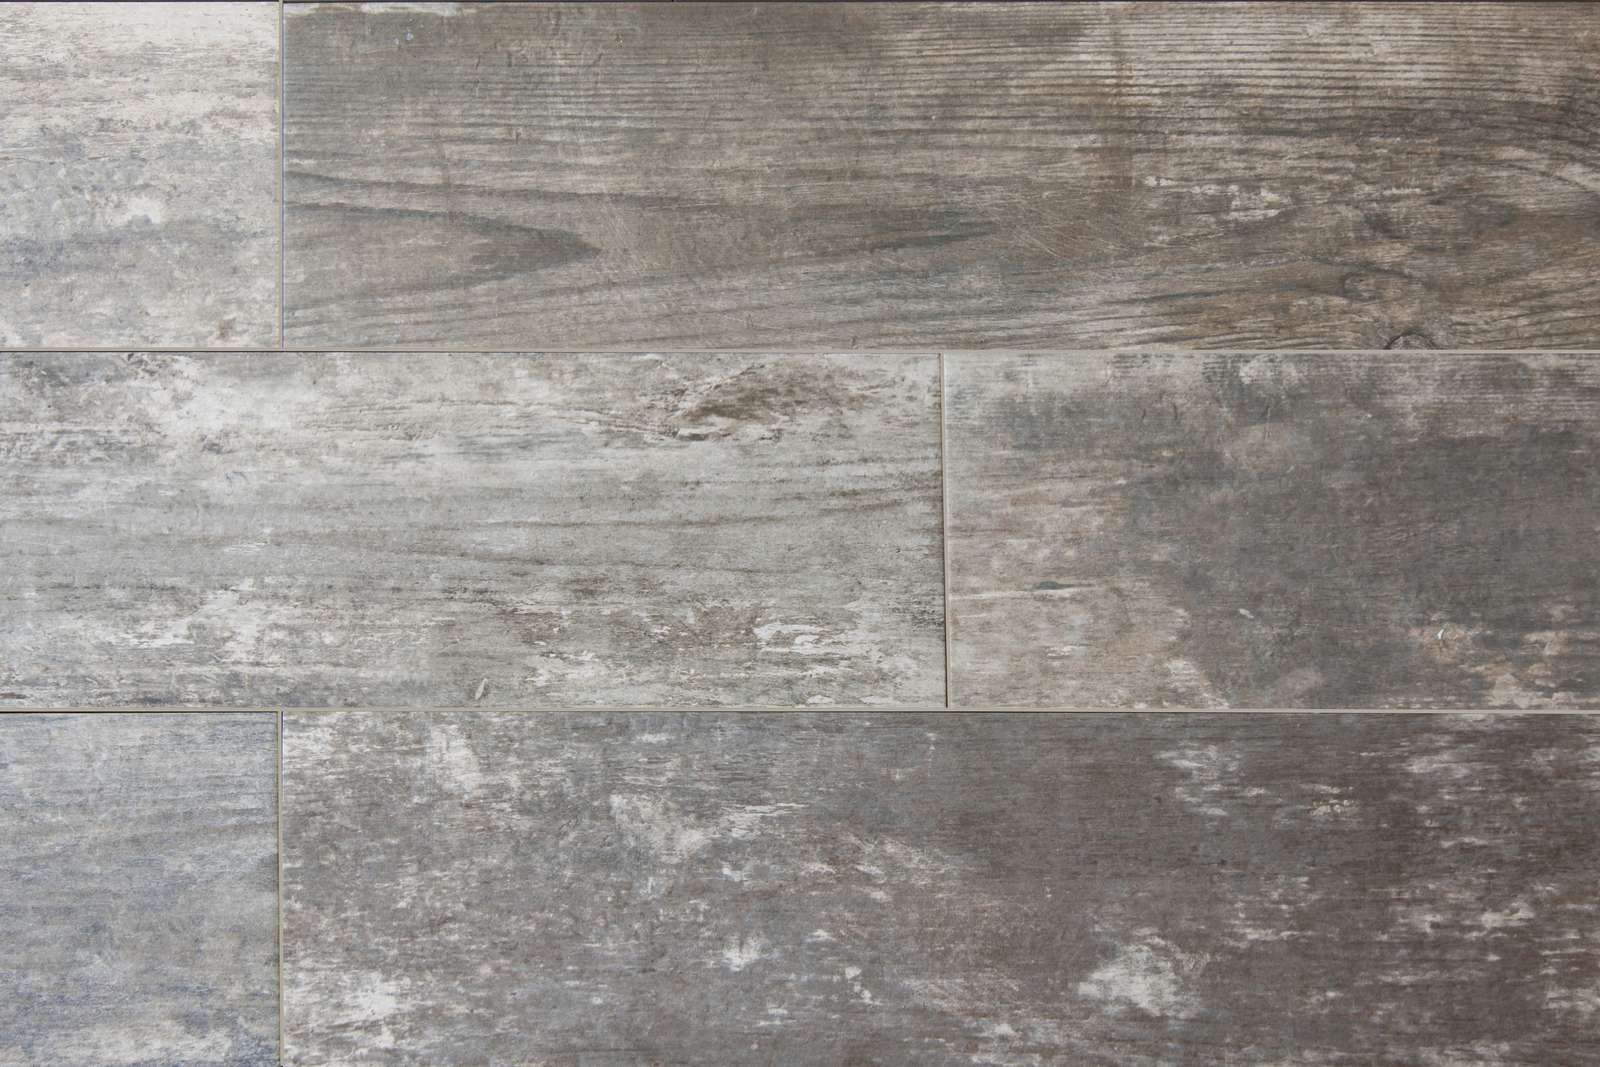 Floor tiles by brand theme south cypress belleville 8 x 36 barrel porcelain tile dailygadgetfo Gallery